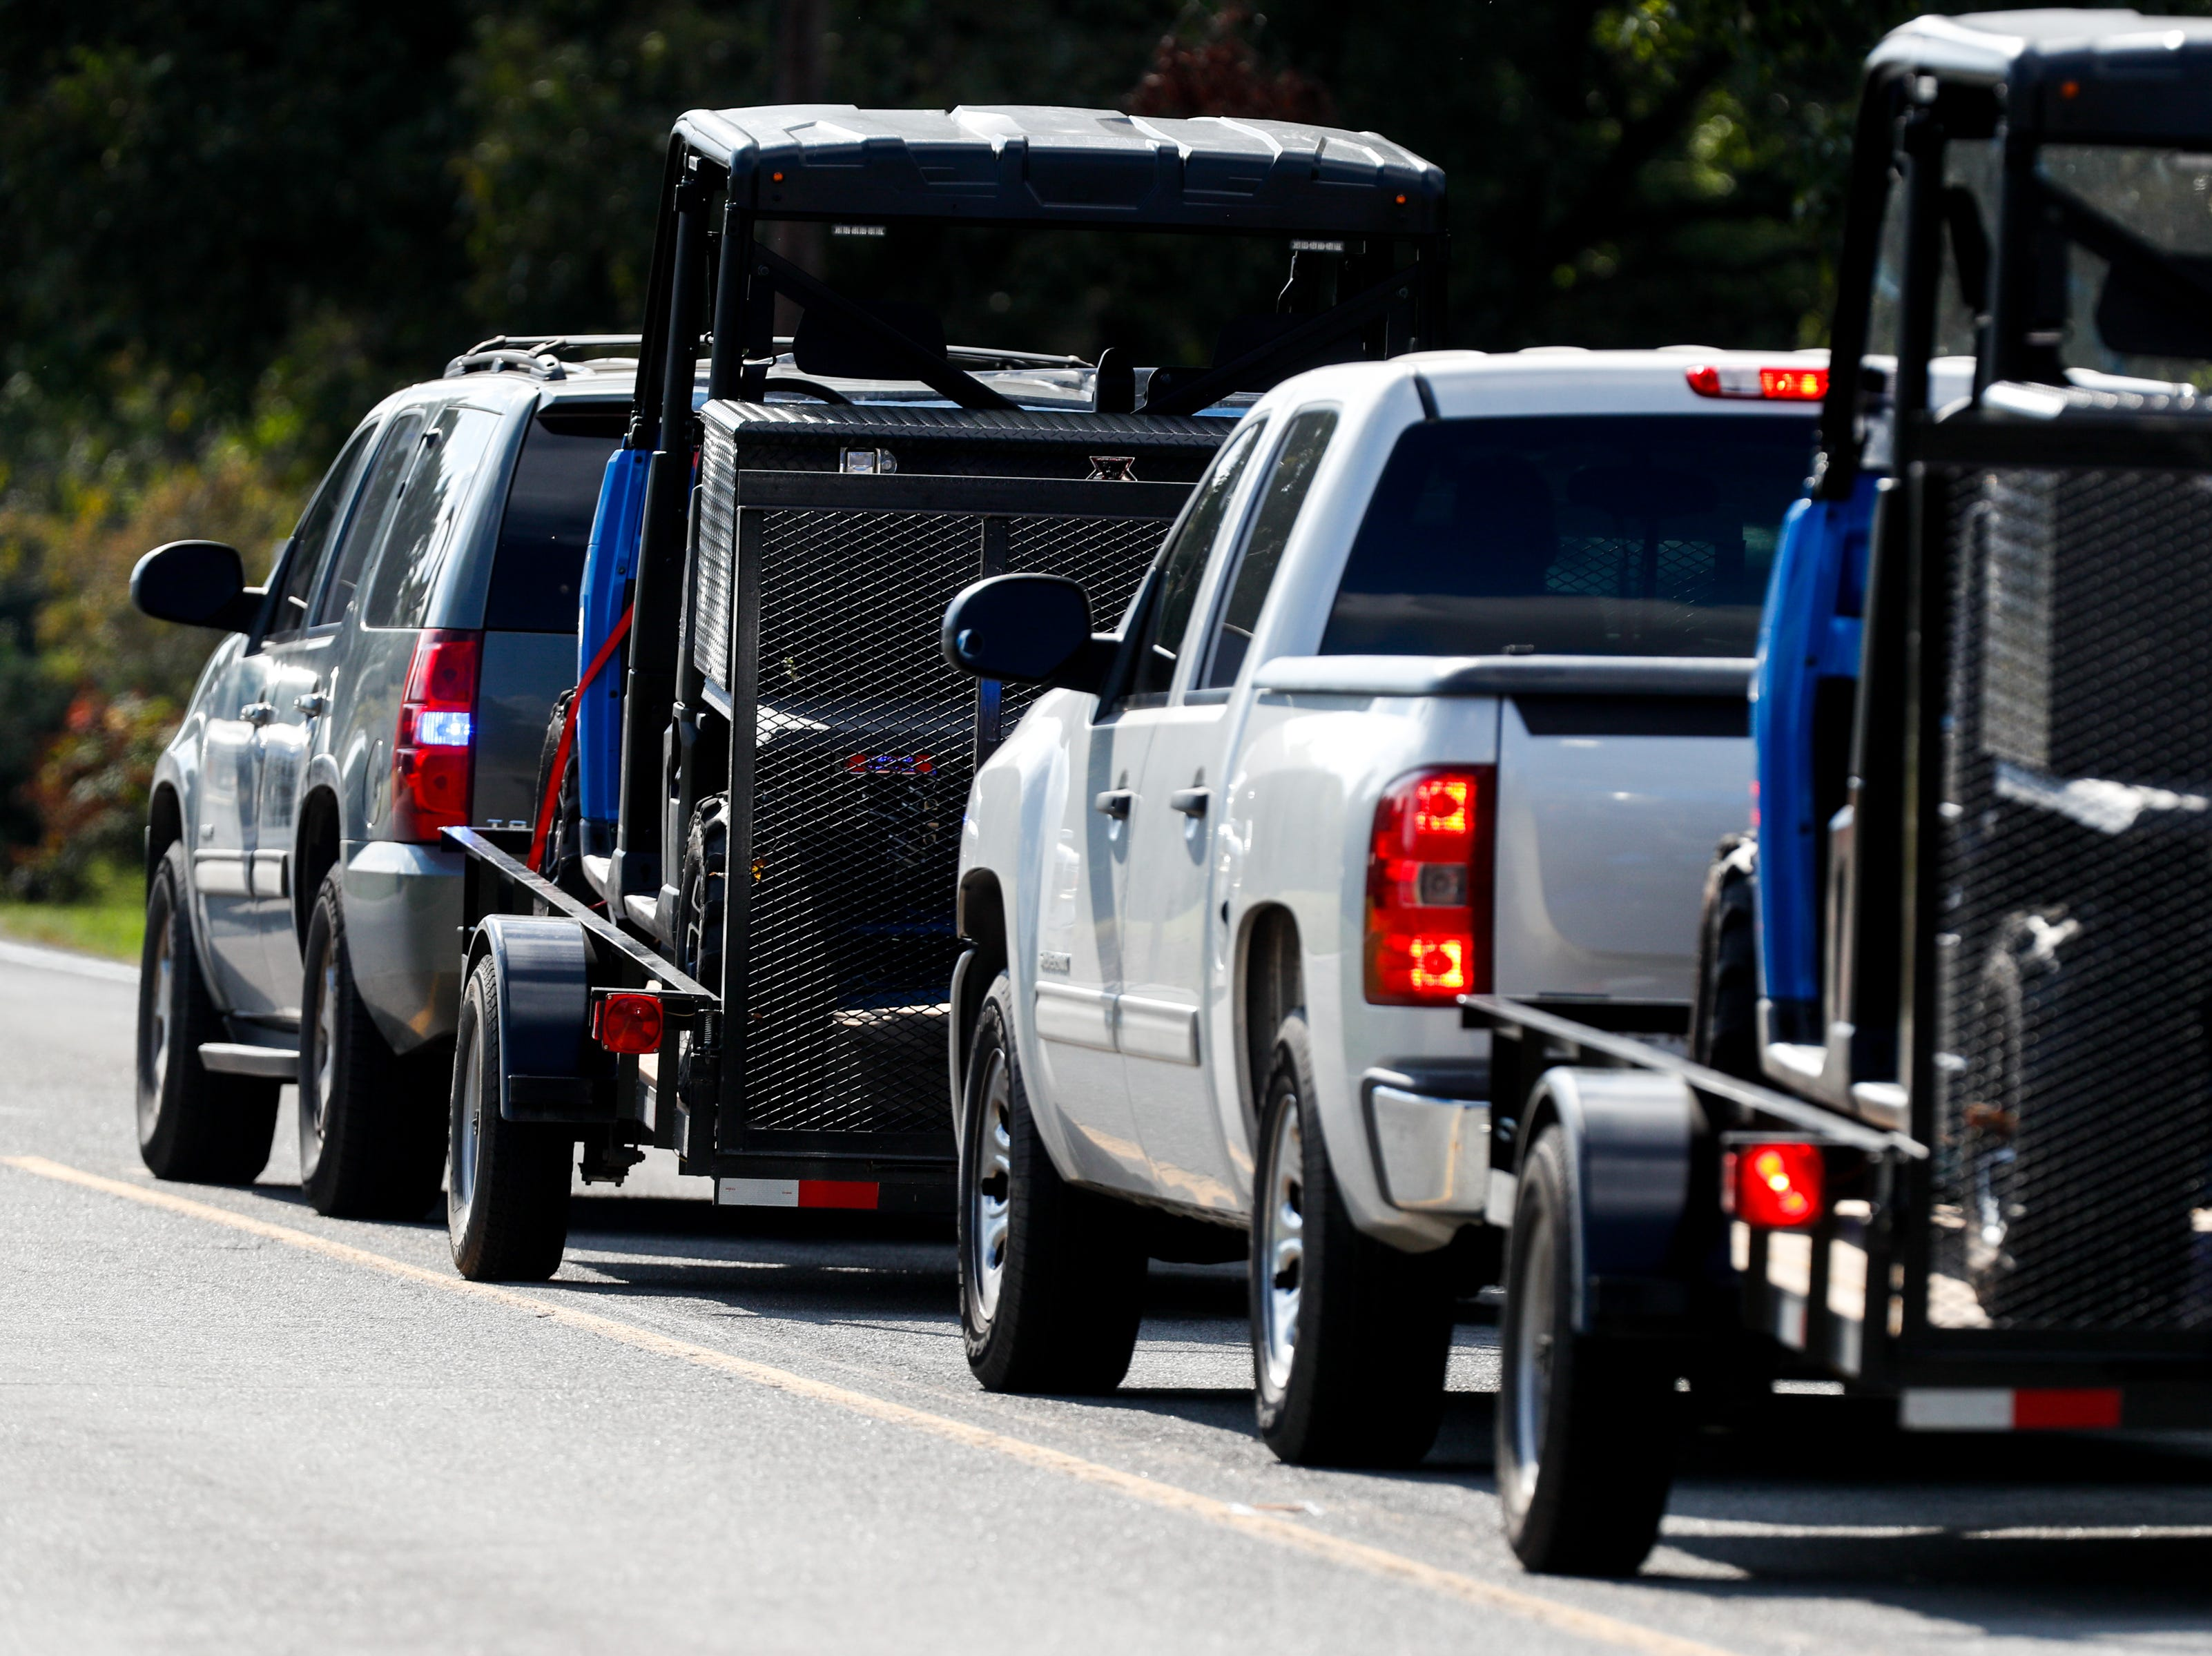 Police take off road vehicles past the roadblock on Lylewood Road at Cooper Creek and York Landing Roads during a manhunt for an accused murderer Wednesday, Oct. 3, 2018, in Woodlawn, Tenn.